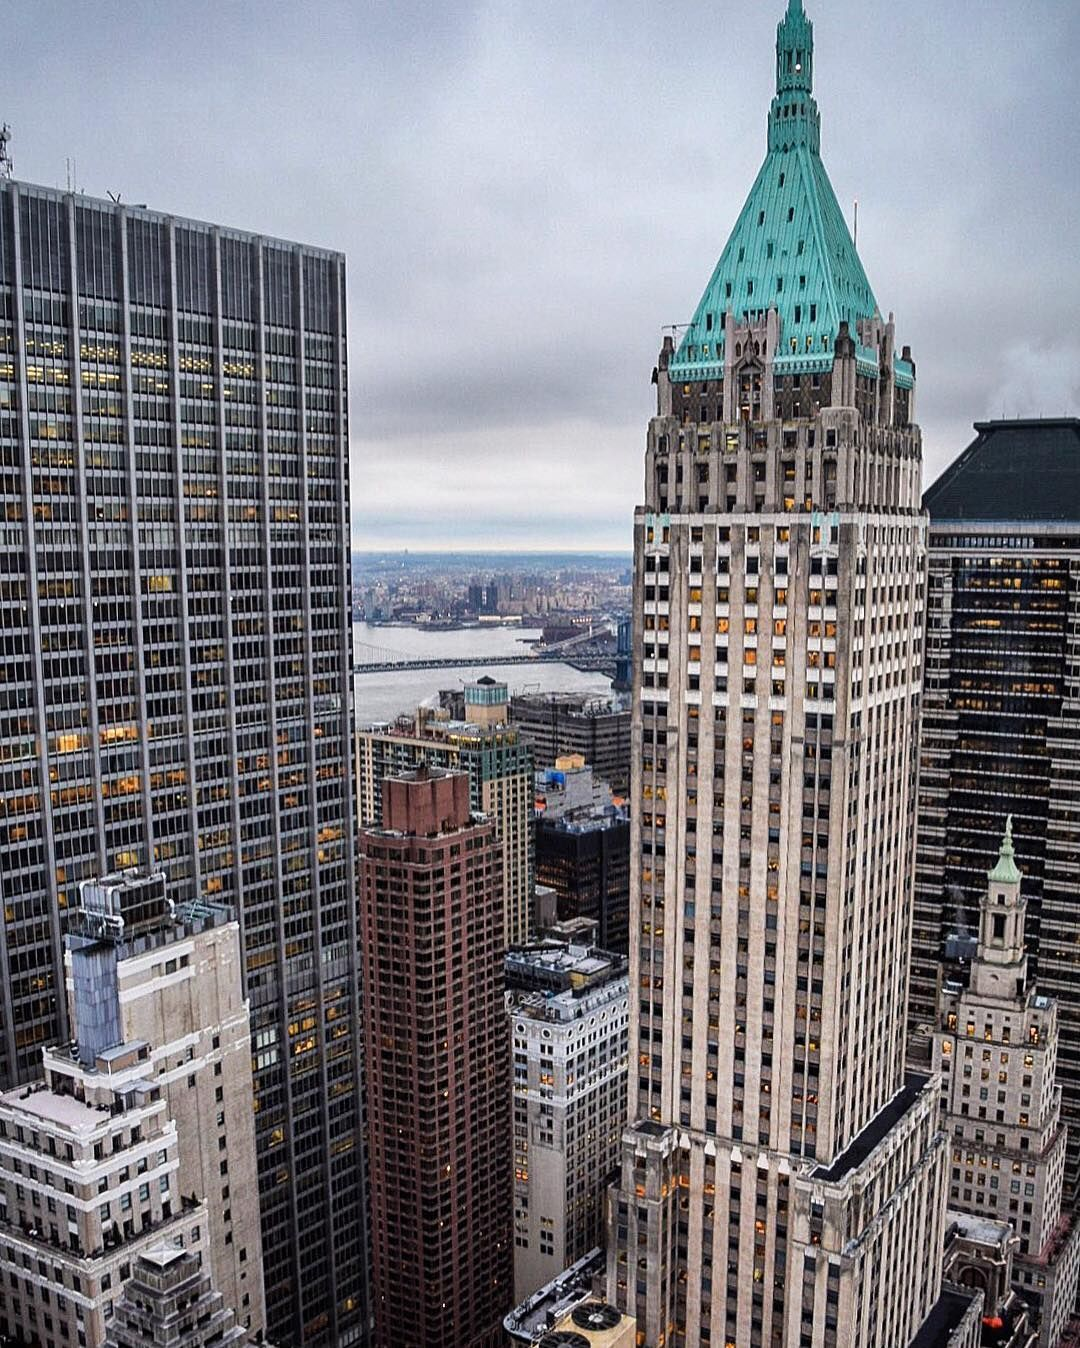 Elena On Instagram Amazing View From Onewallstreet The Building With The Green Roof Is 40 Wall Street New York Pictures Concrete Jungle Chrysler Building